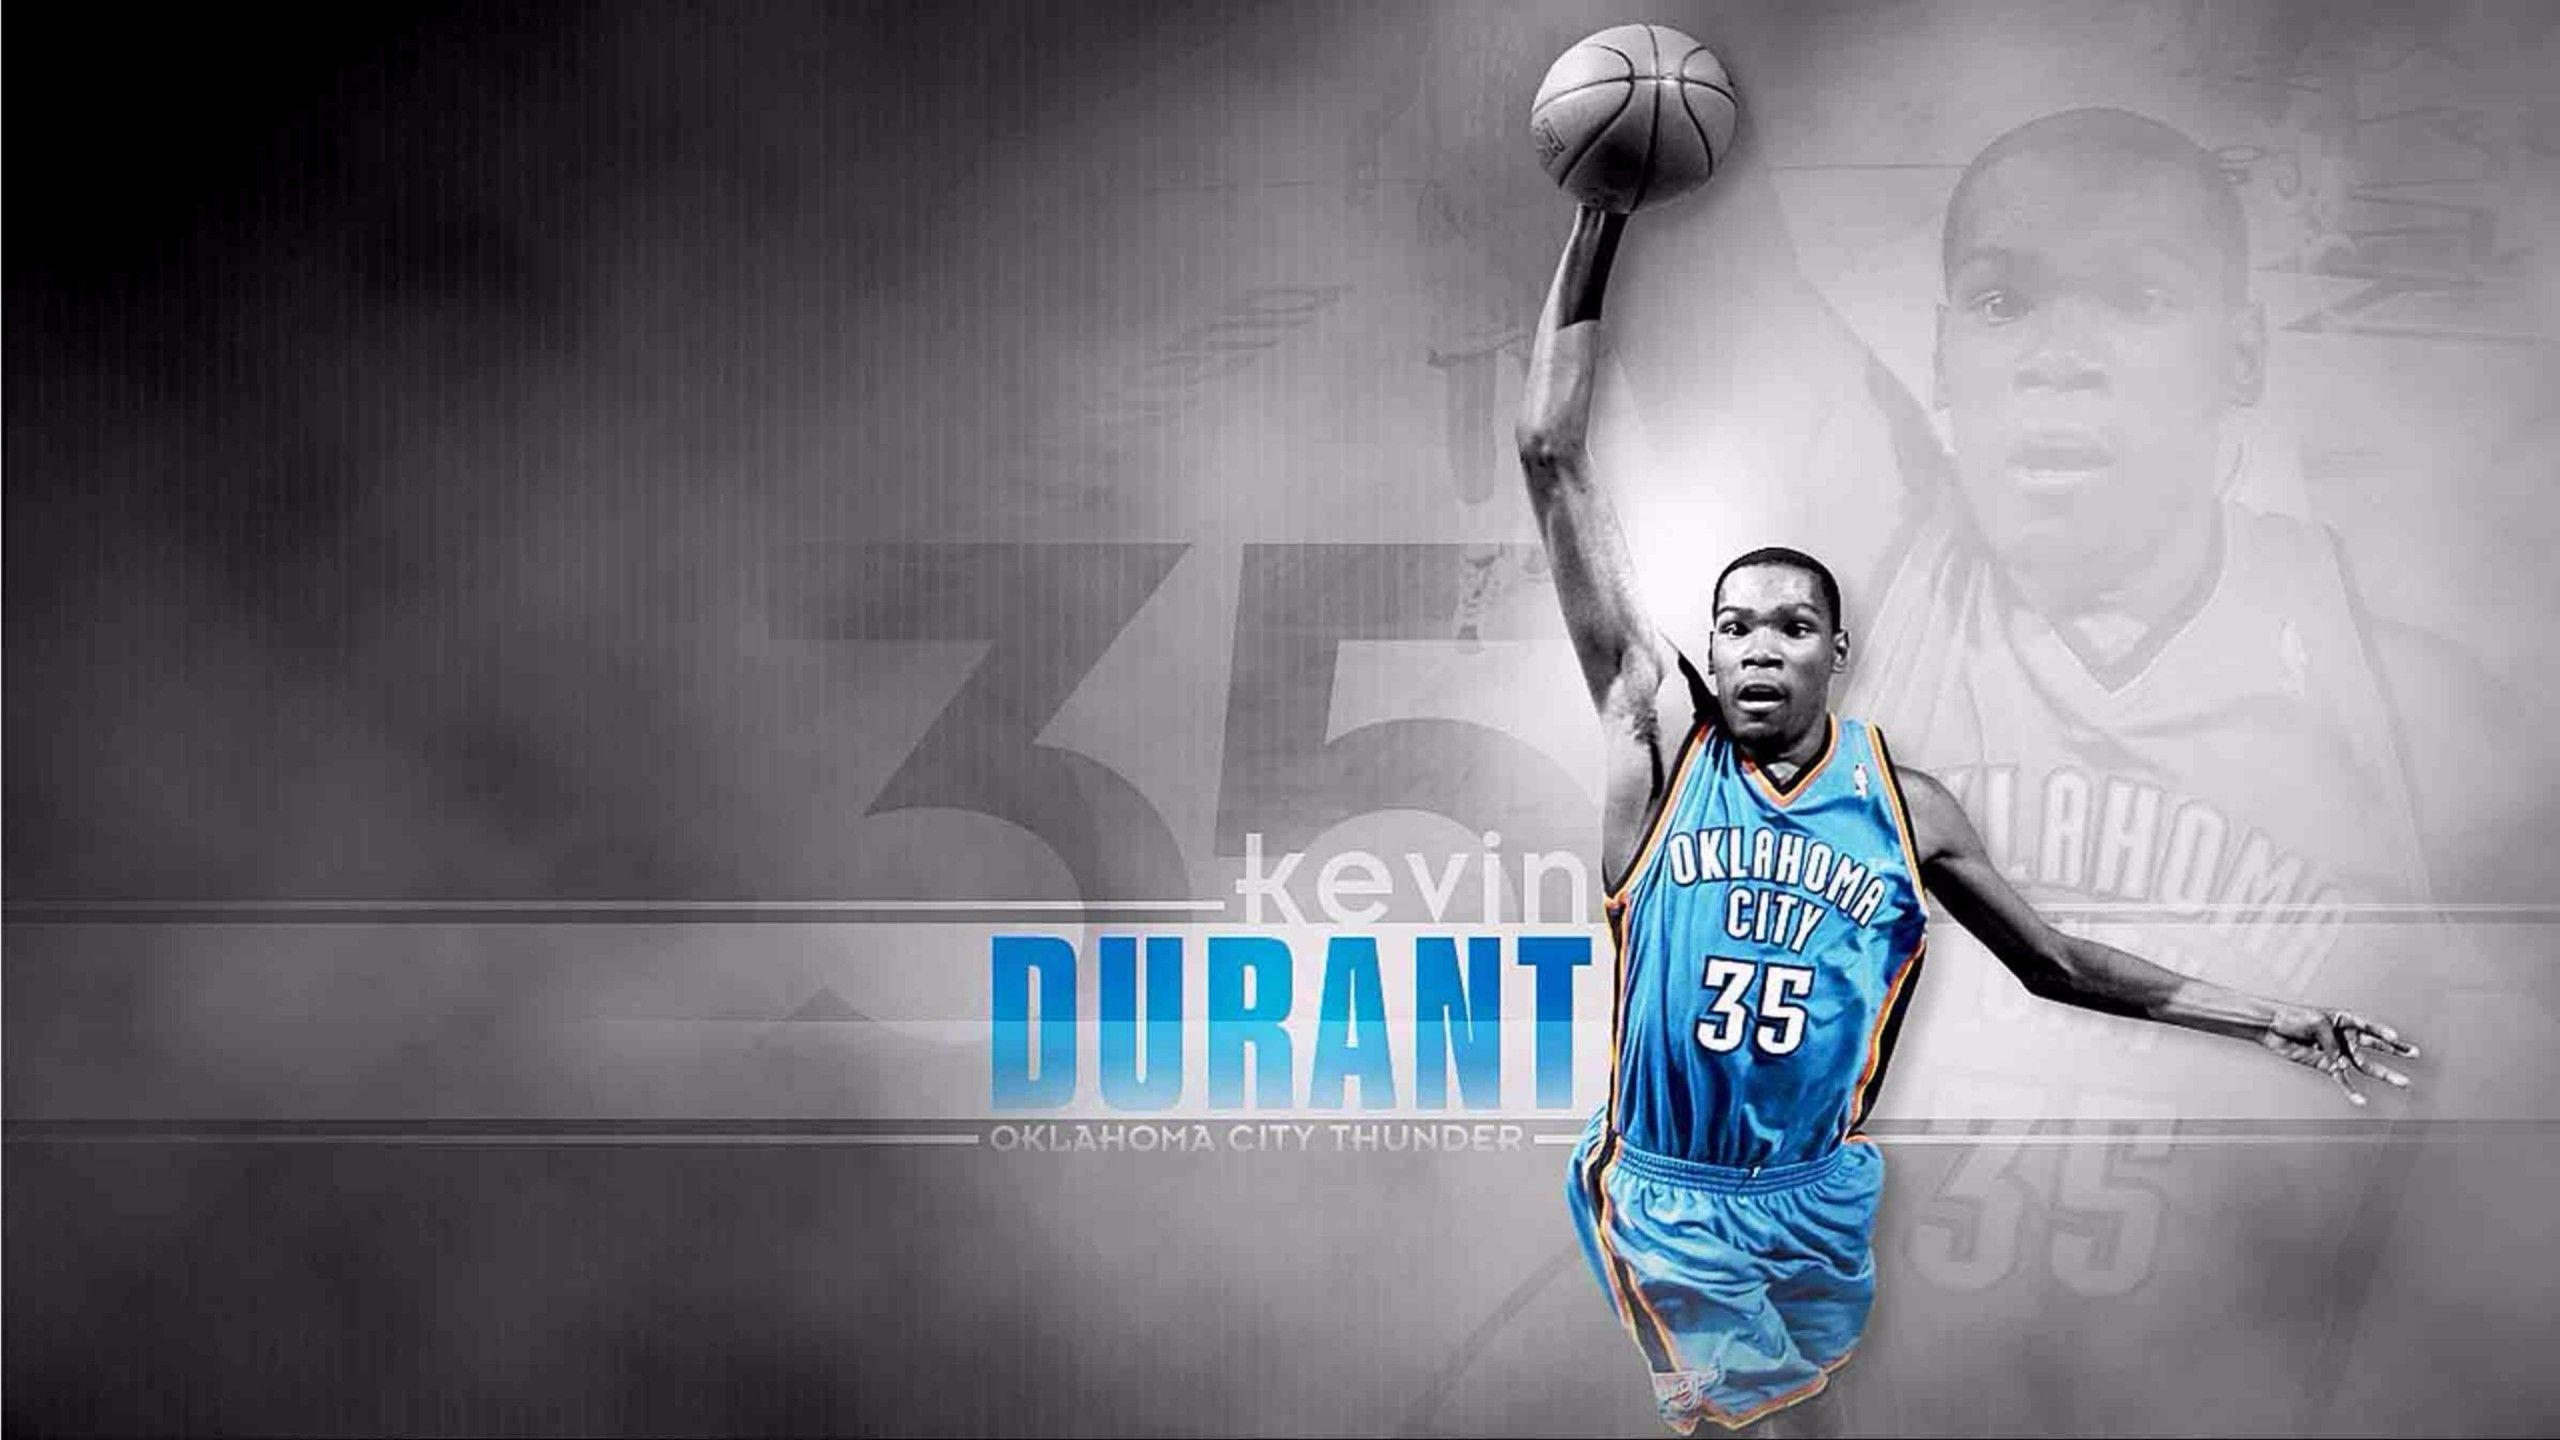 Kevin Durant Wallpapers HD 2016 2560x1440